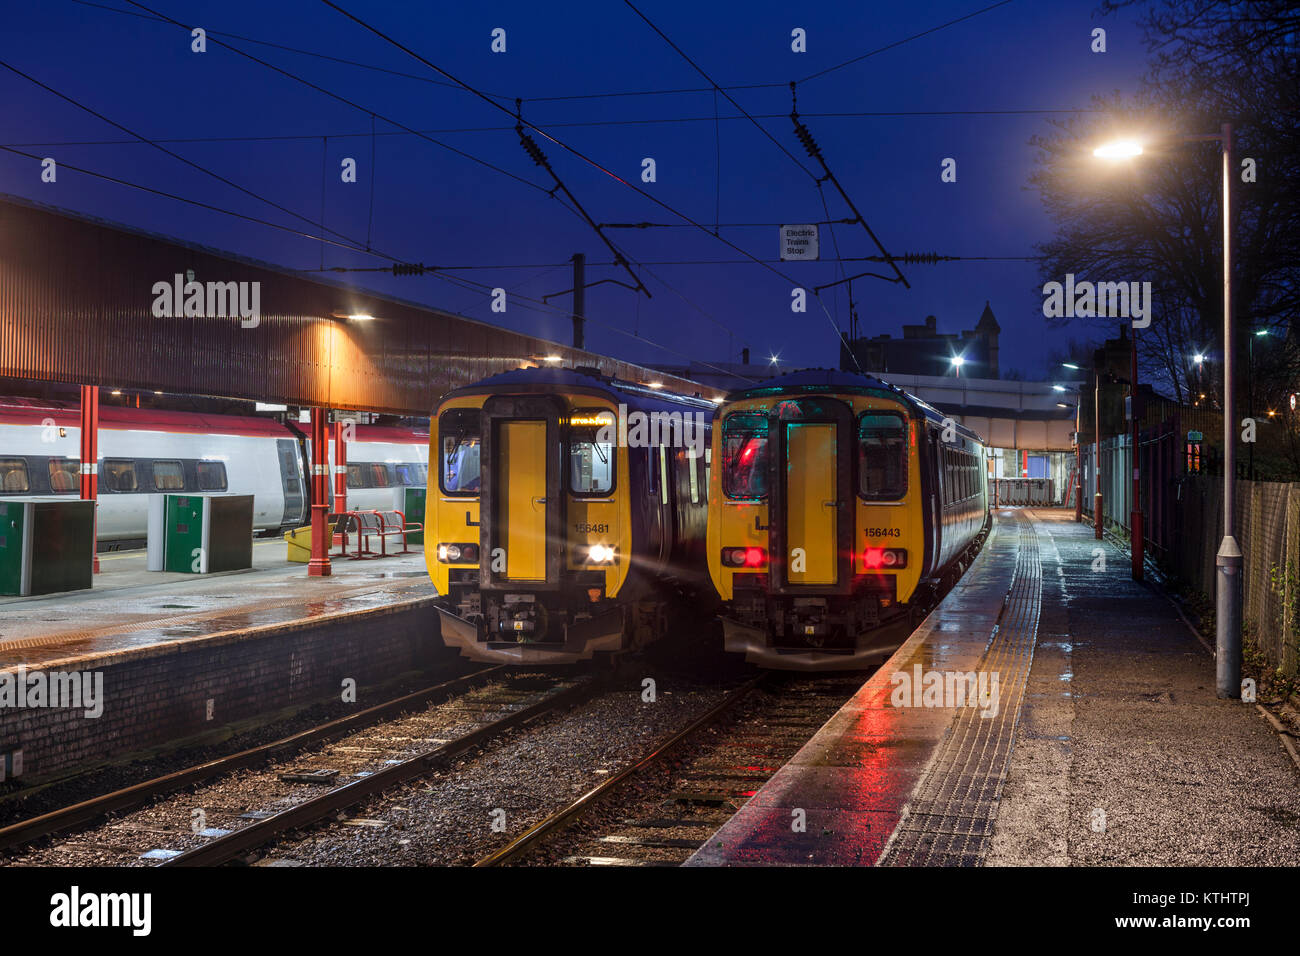 2 Arriva Northern rail class 156 sprinter trains at Lancaster station - Stock Image